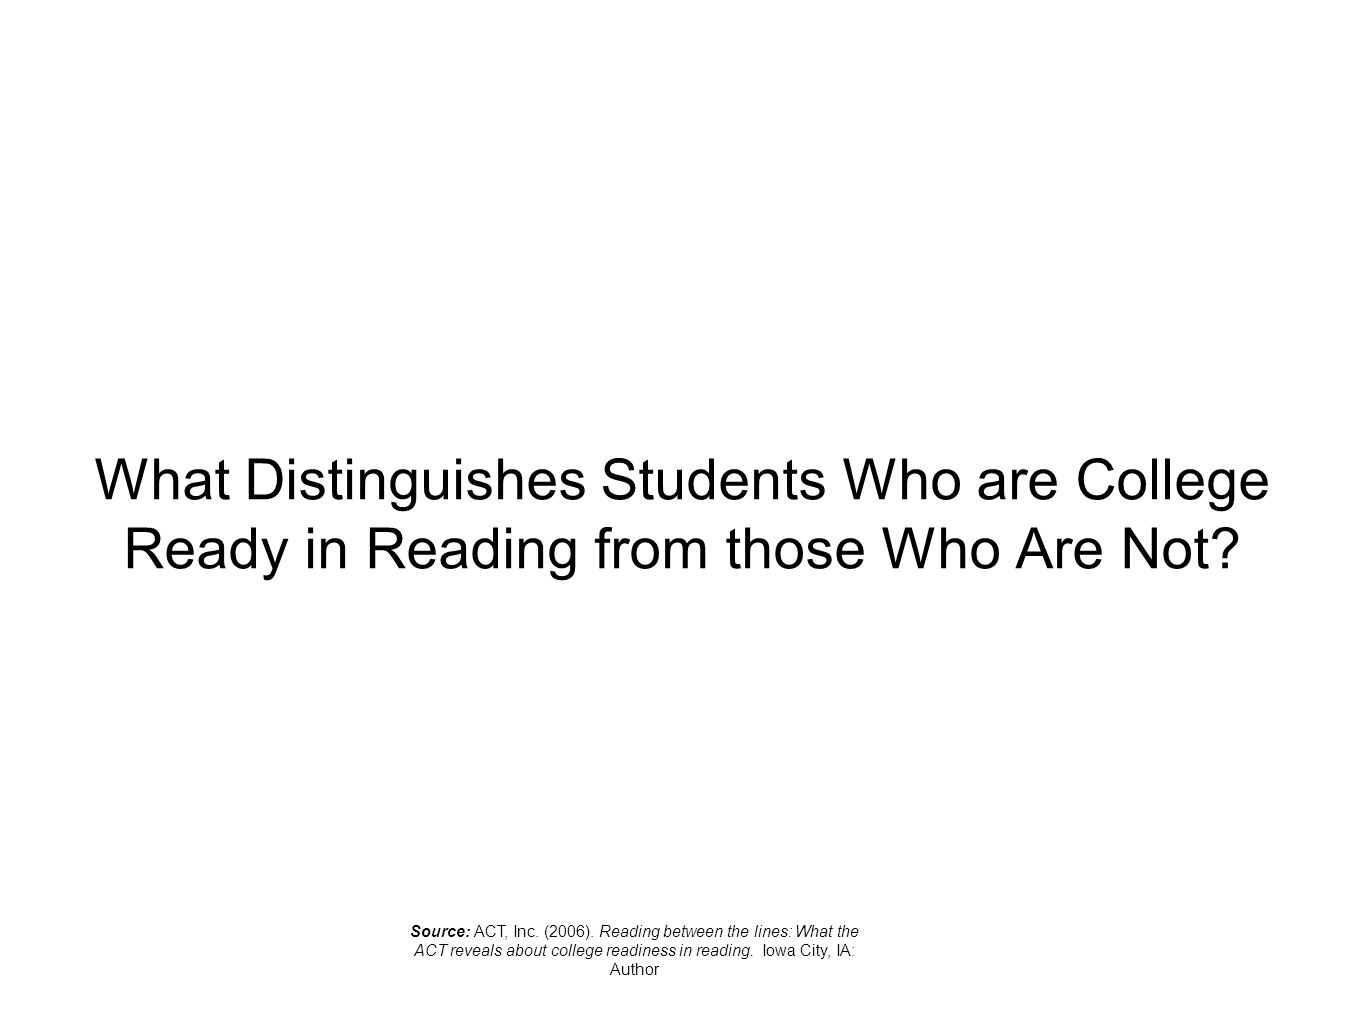 What Distinguishes Students Who are College Ready in Reading from those Who Are Not.